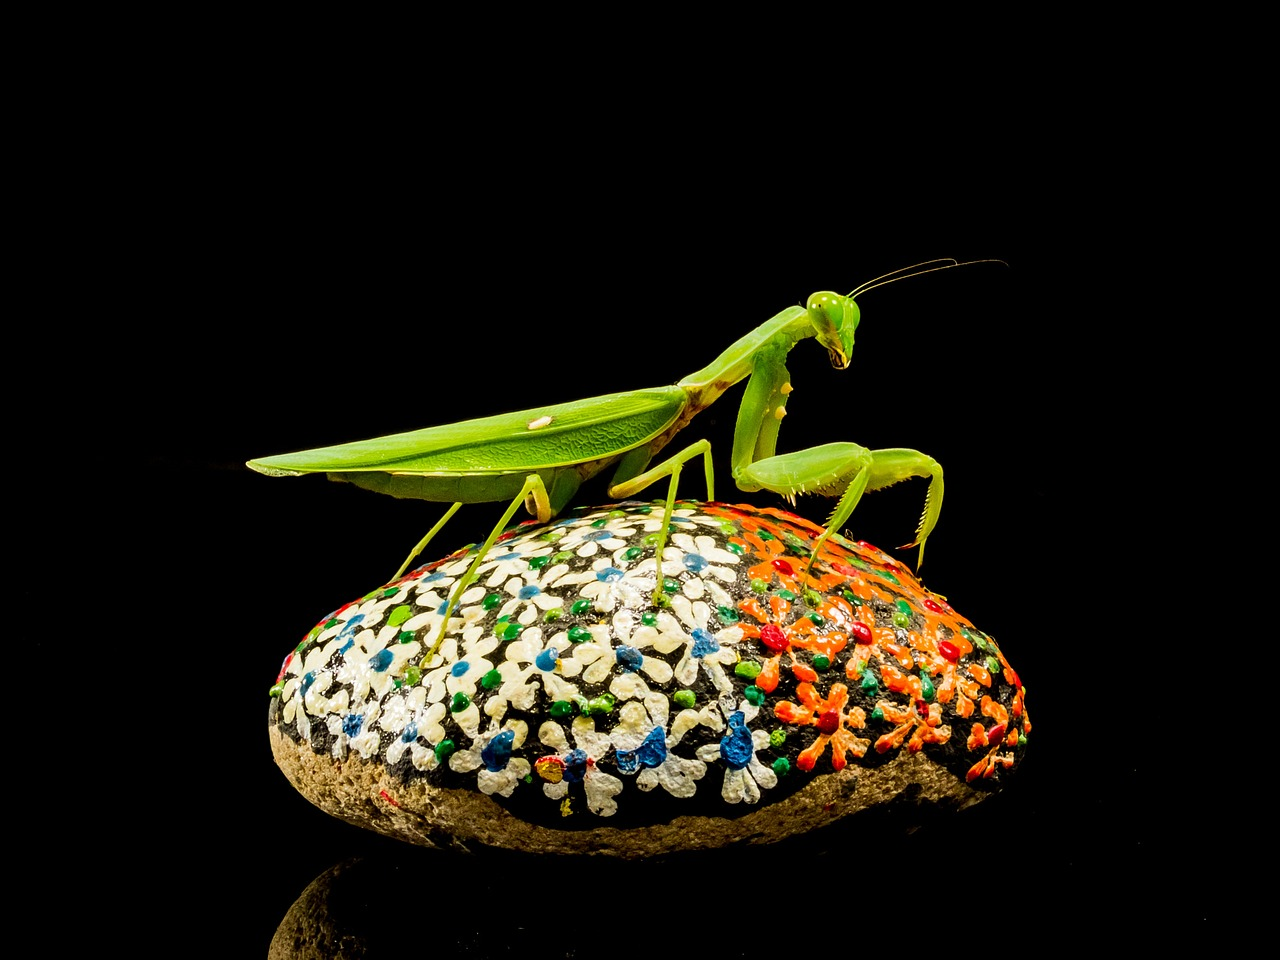 praying mantis fishing locust green free photo